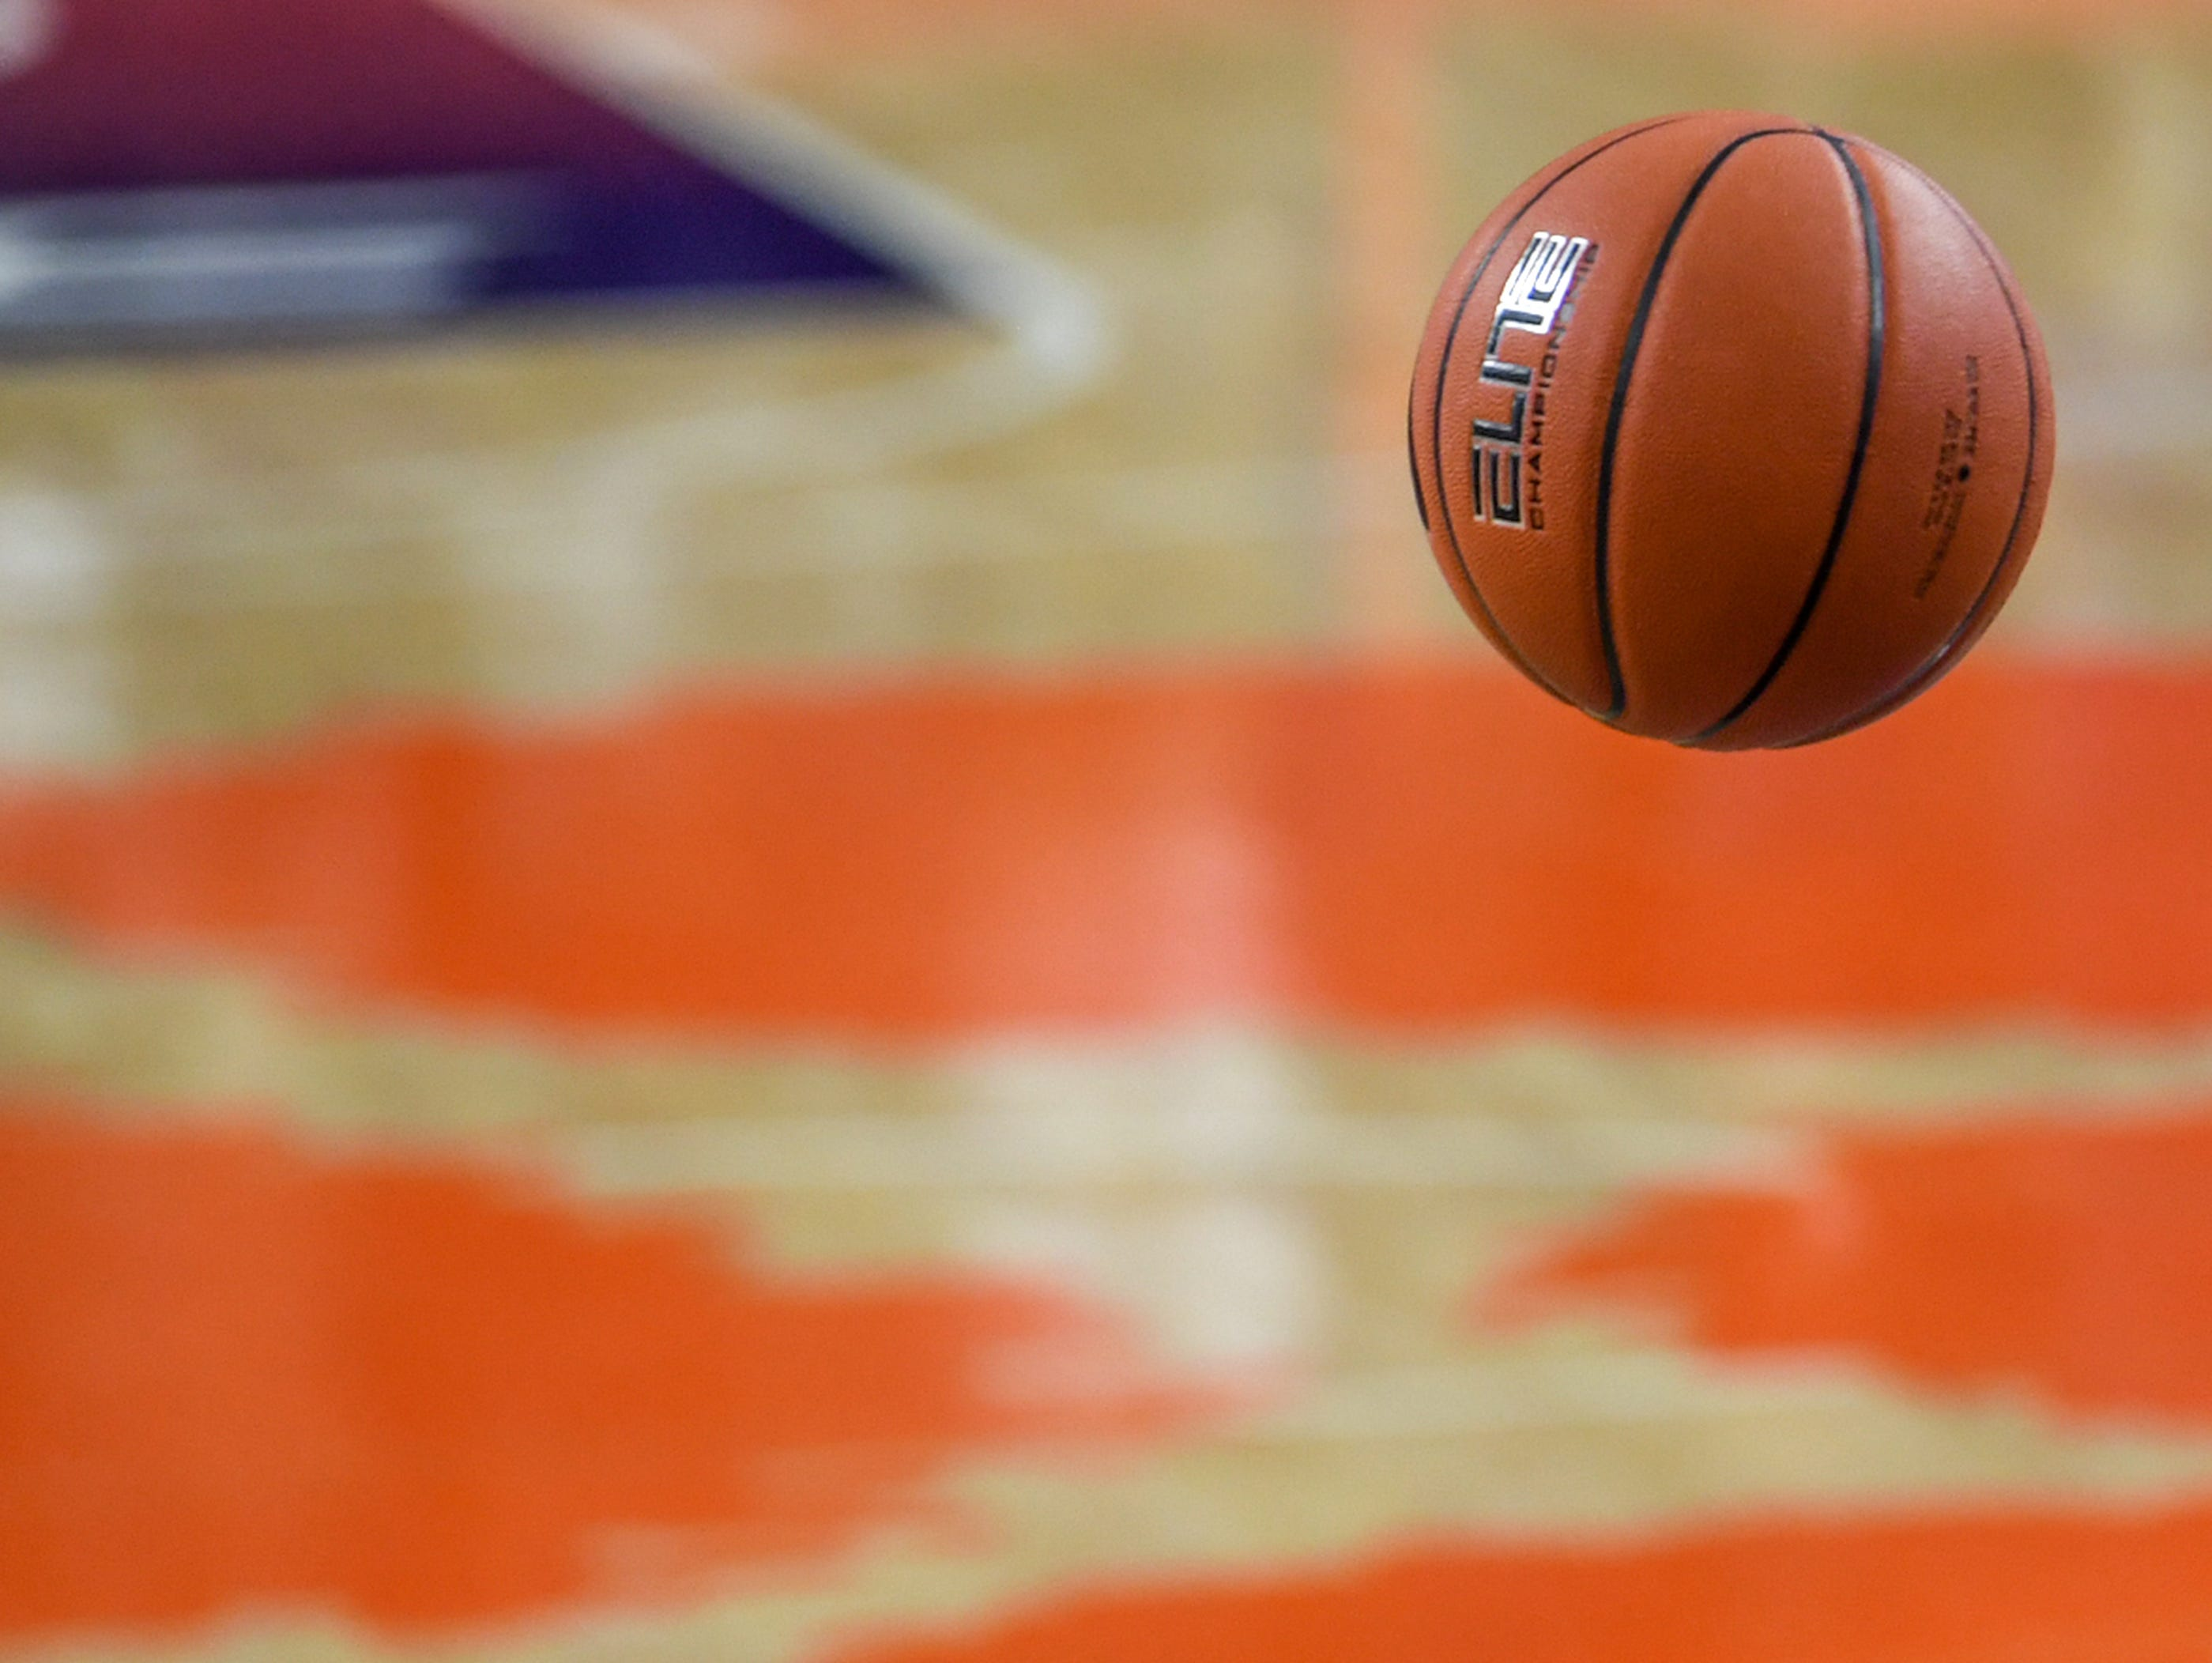 A ball falls though after a free throw during the first half at Littlejohn Coliseum in Clemson Thursday, January 17, 2019.